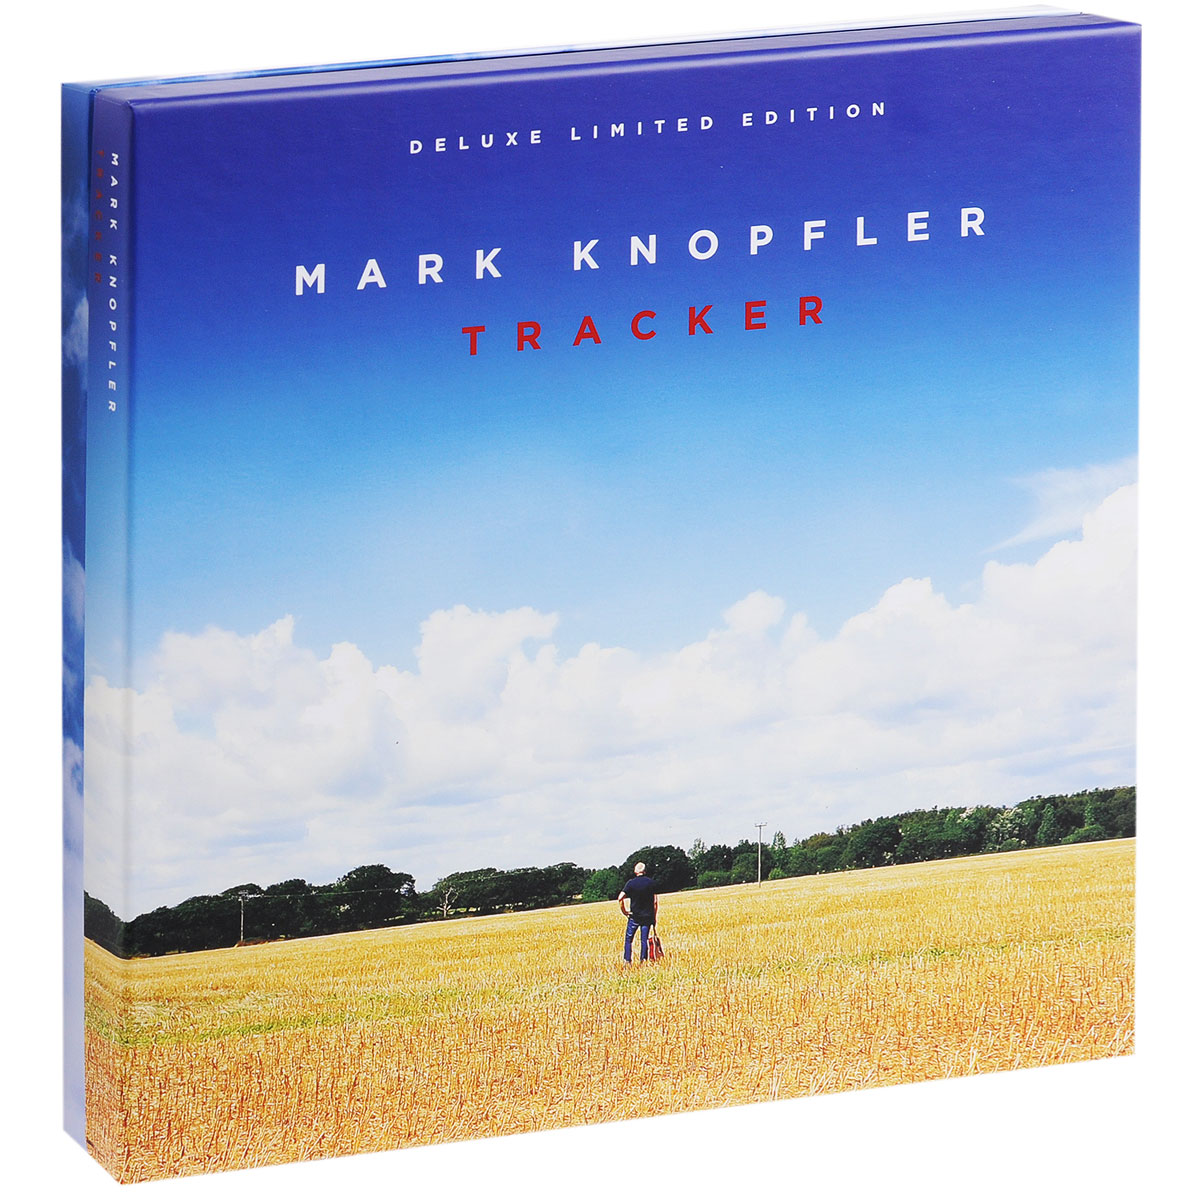 Марк Нопфлер Mark Knopfler. Tracker. Deluxe Limited Edition (2 CD + DVD + 2 LP) блокада 2 dvd